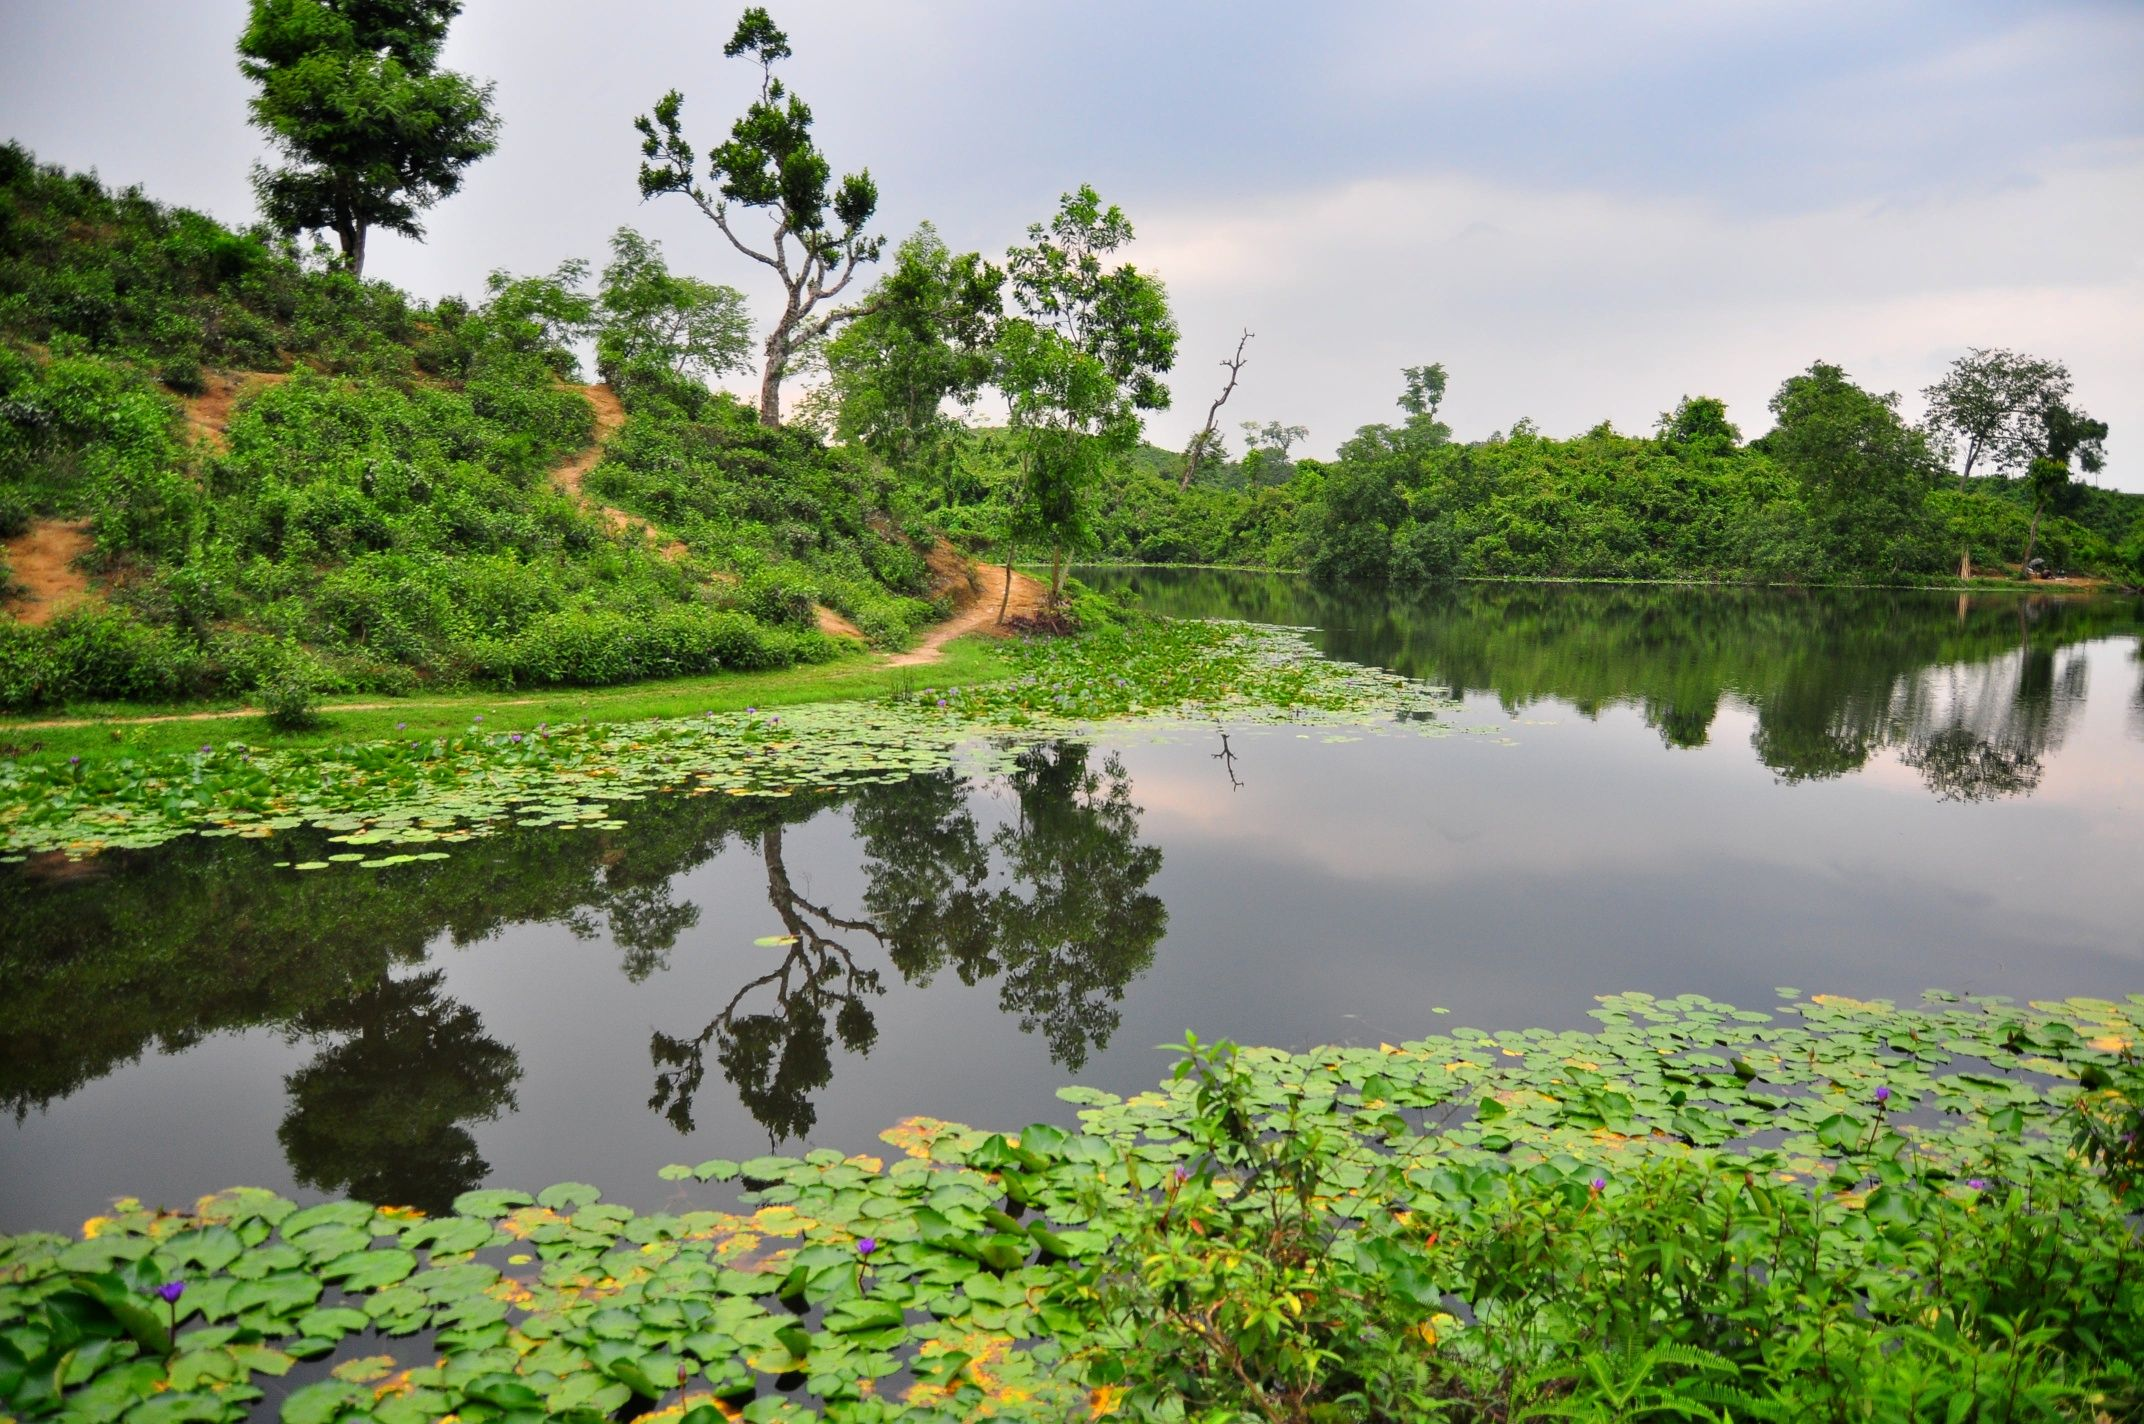 http://gmiah.hubpages.com/hub/Pictures-of-Bangladesh-The-Beautiful-Country